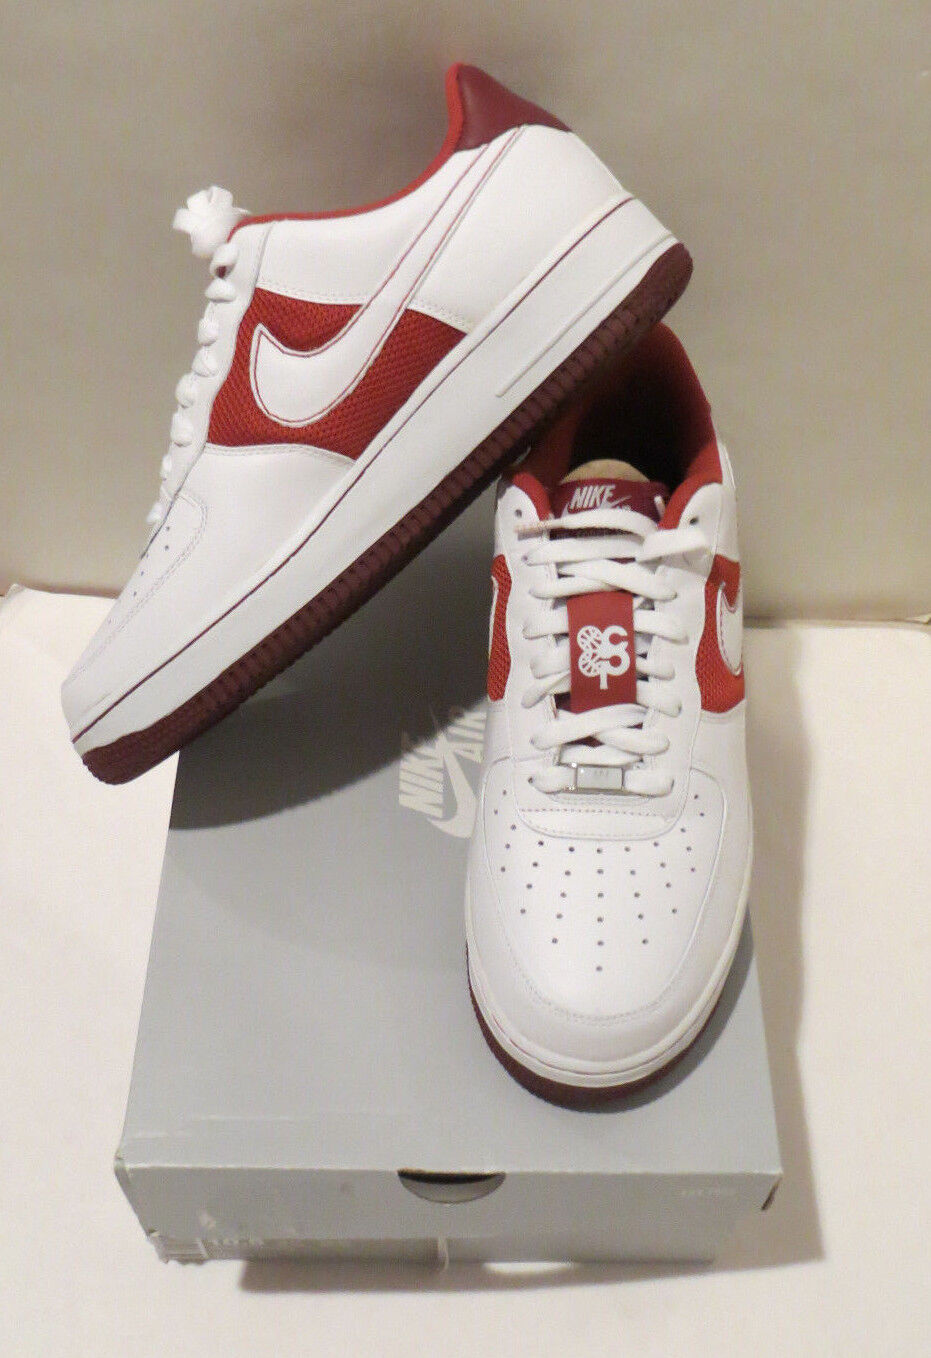 MENS NEW IN BOX NIKE AIR FORCE 1 '07 TERRA COTTA/WHITE/TEAM RED SIZE 10.5